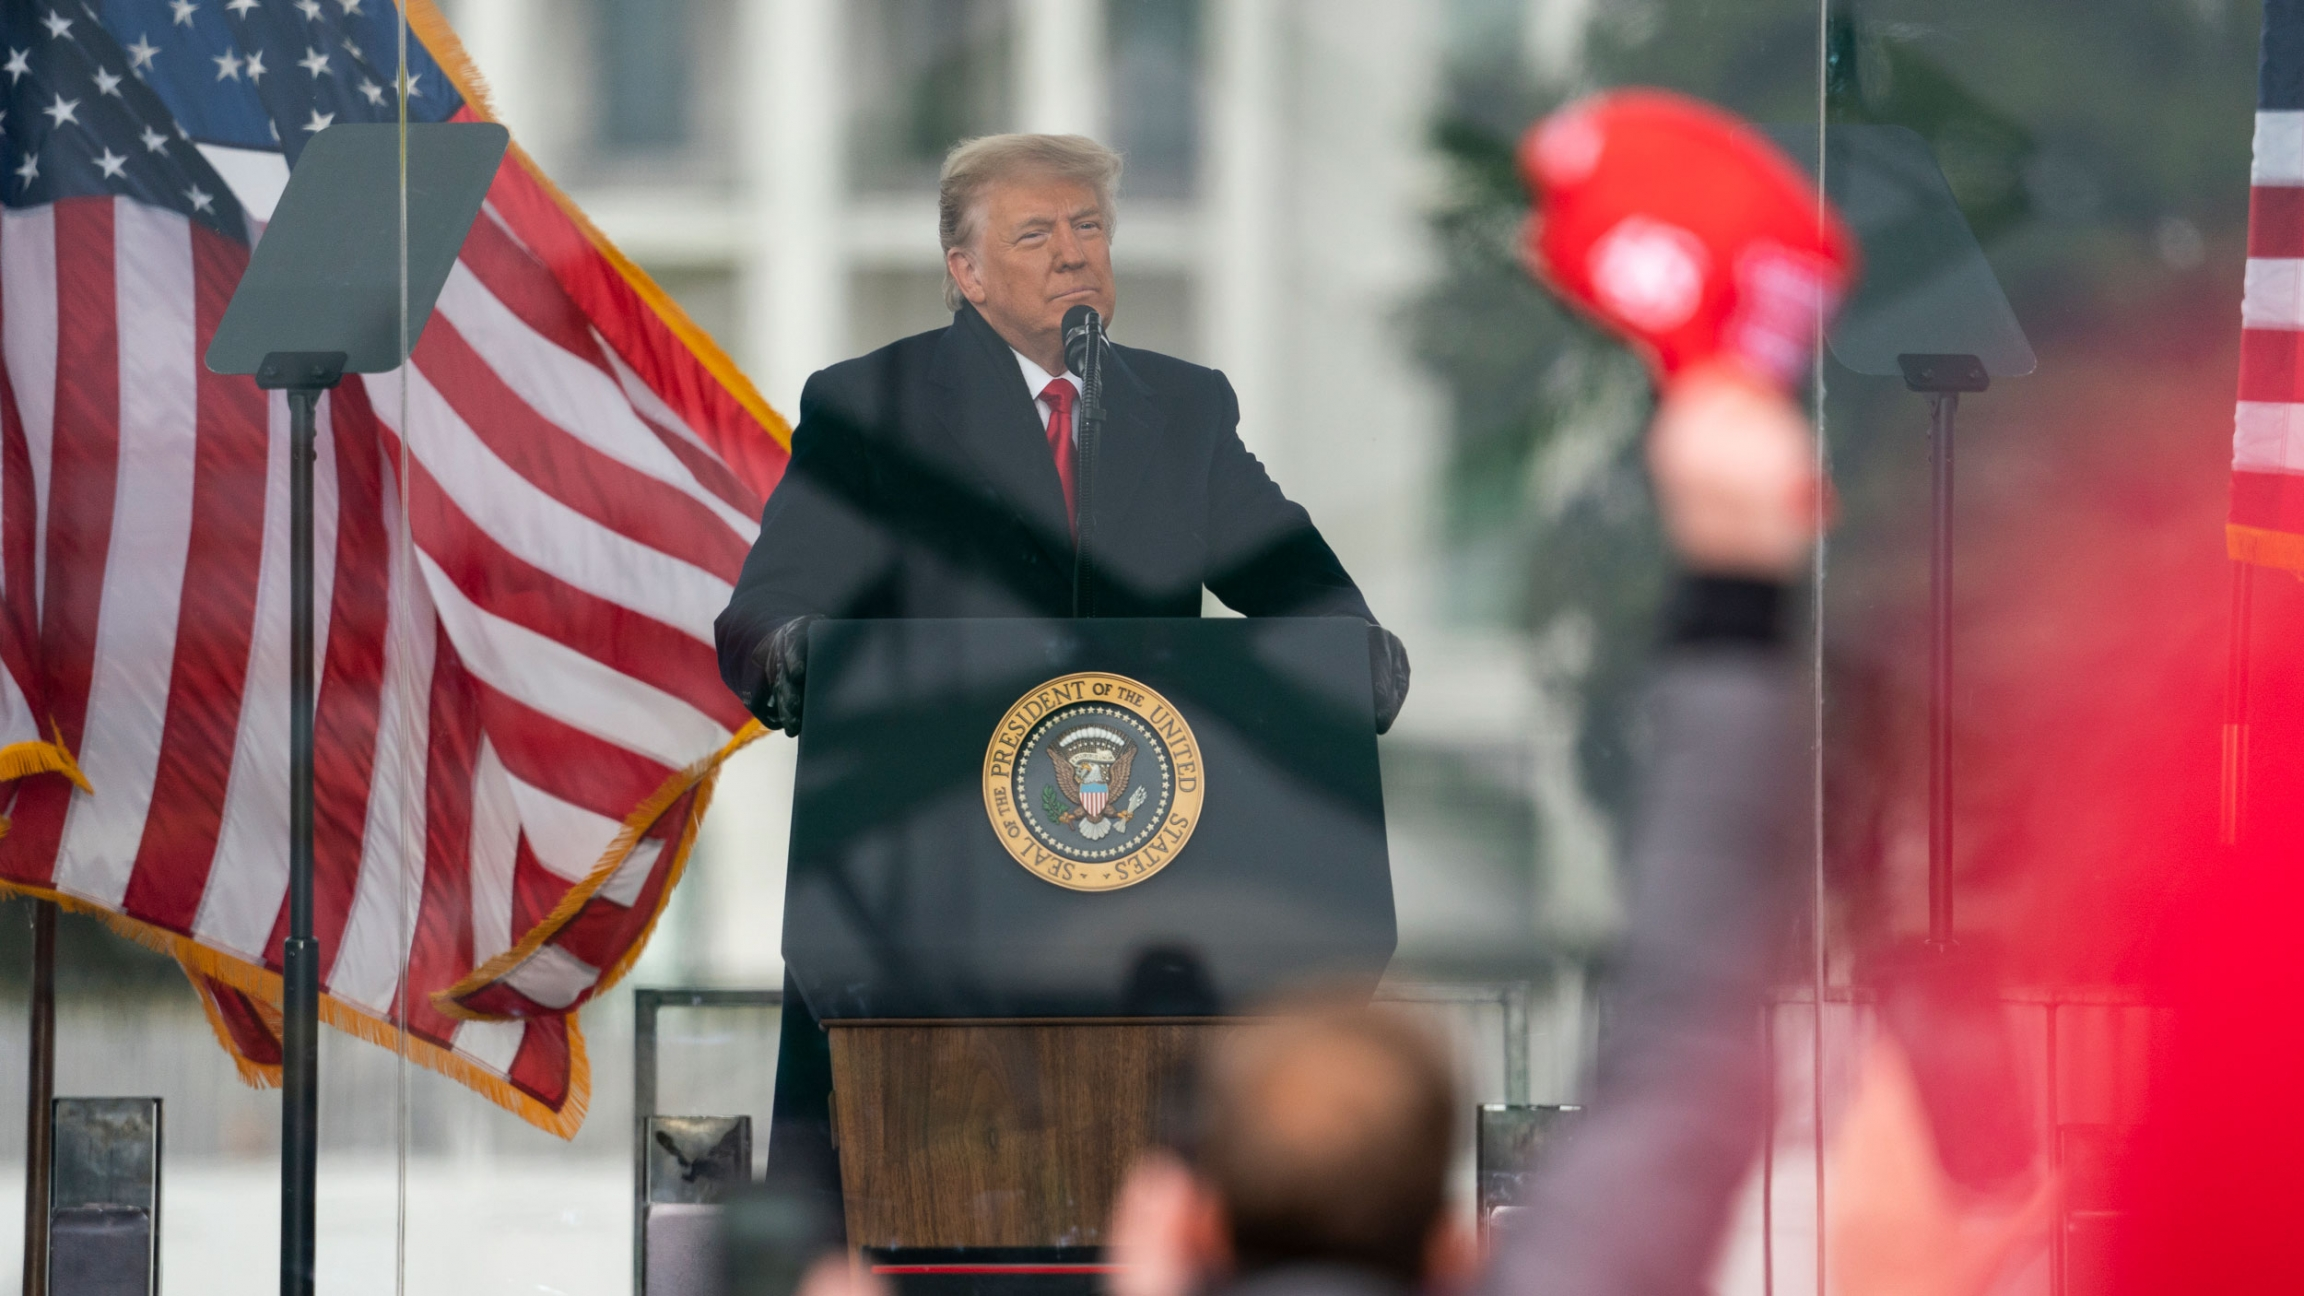 President Donald Trump is shown standing at a podium speaking with US flags waving behind him.